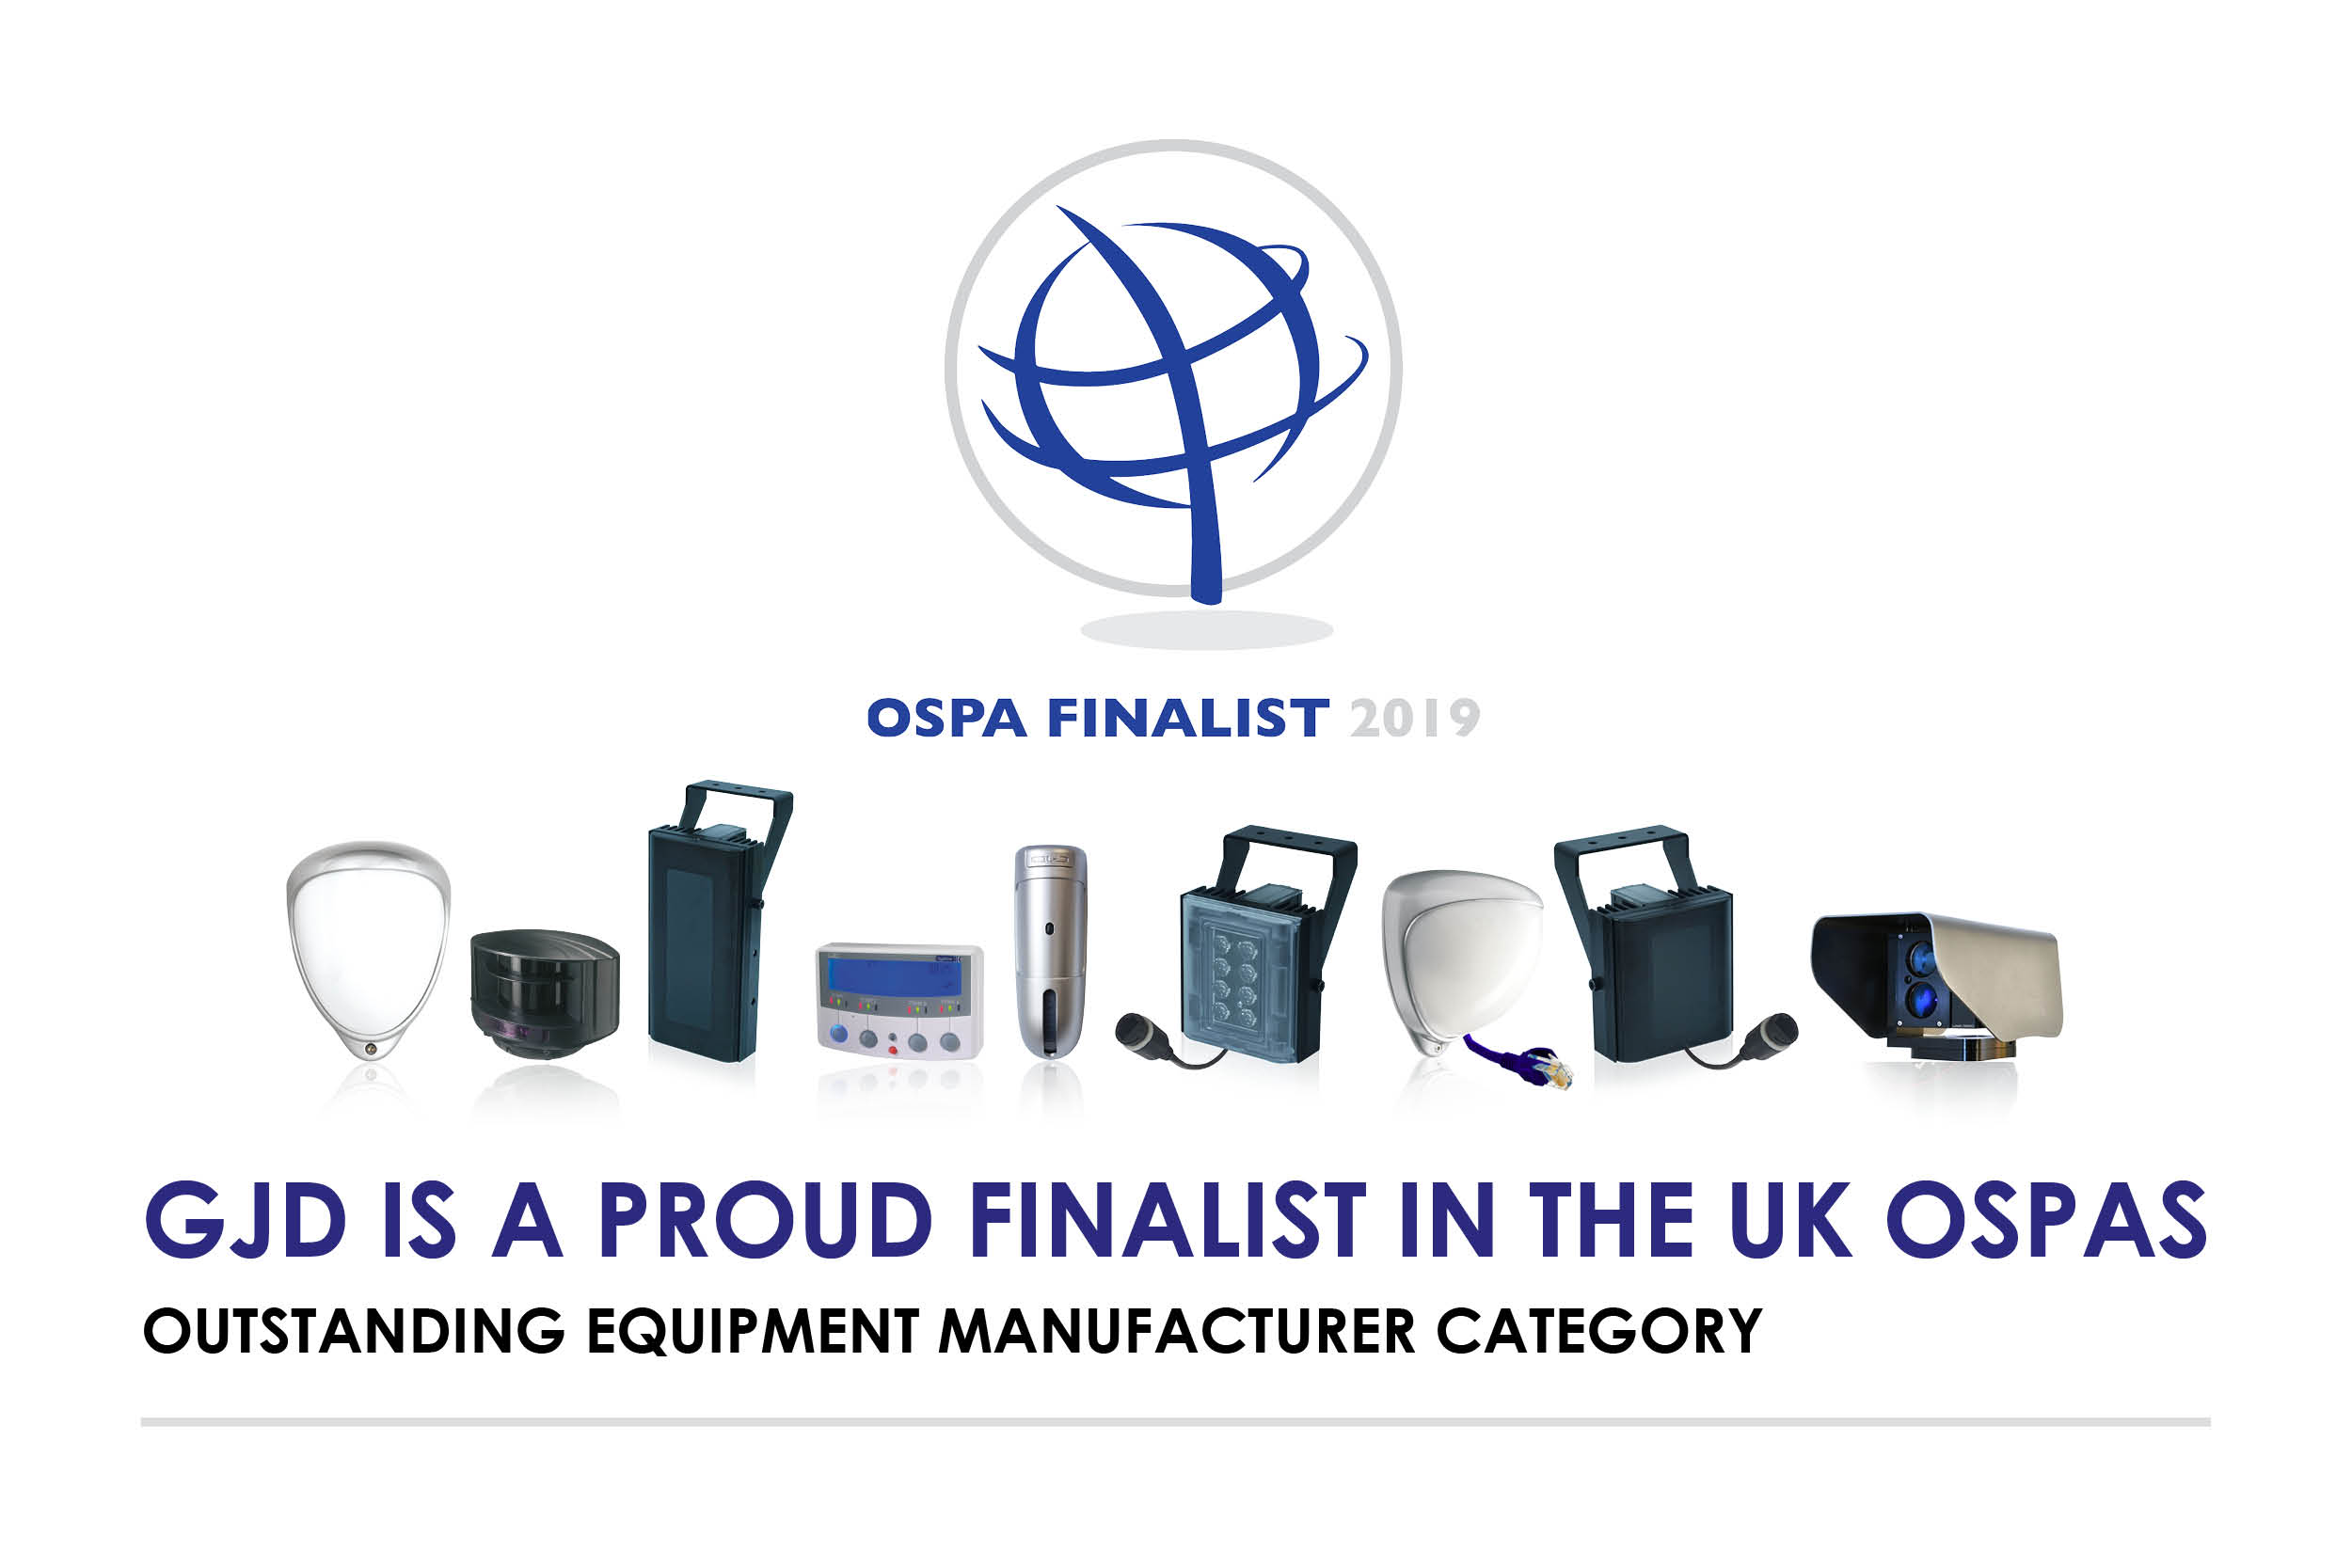 GJD shortlisted for UK OSPA 2019 Award